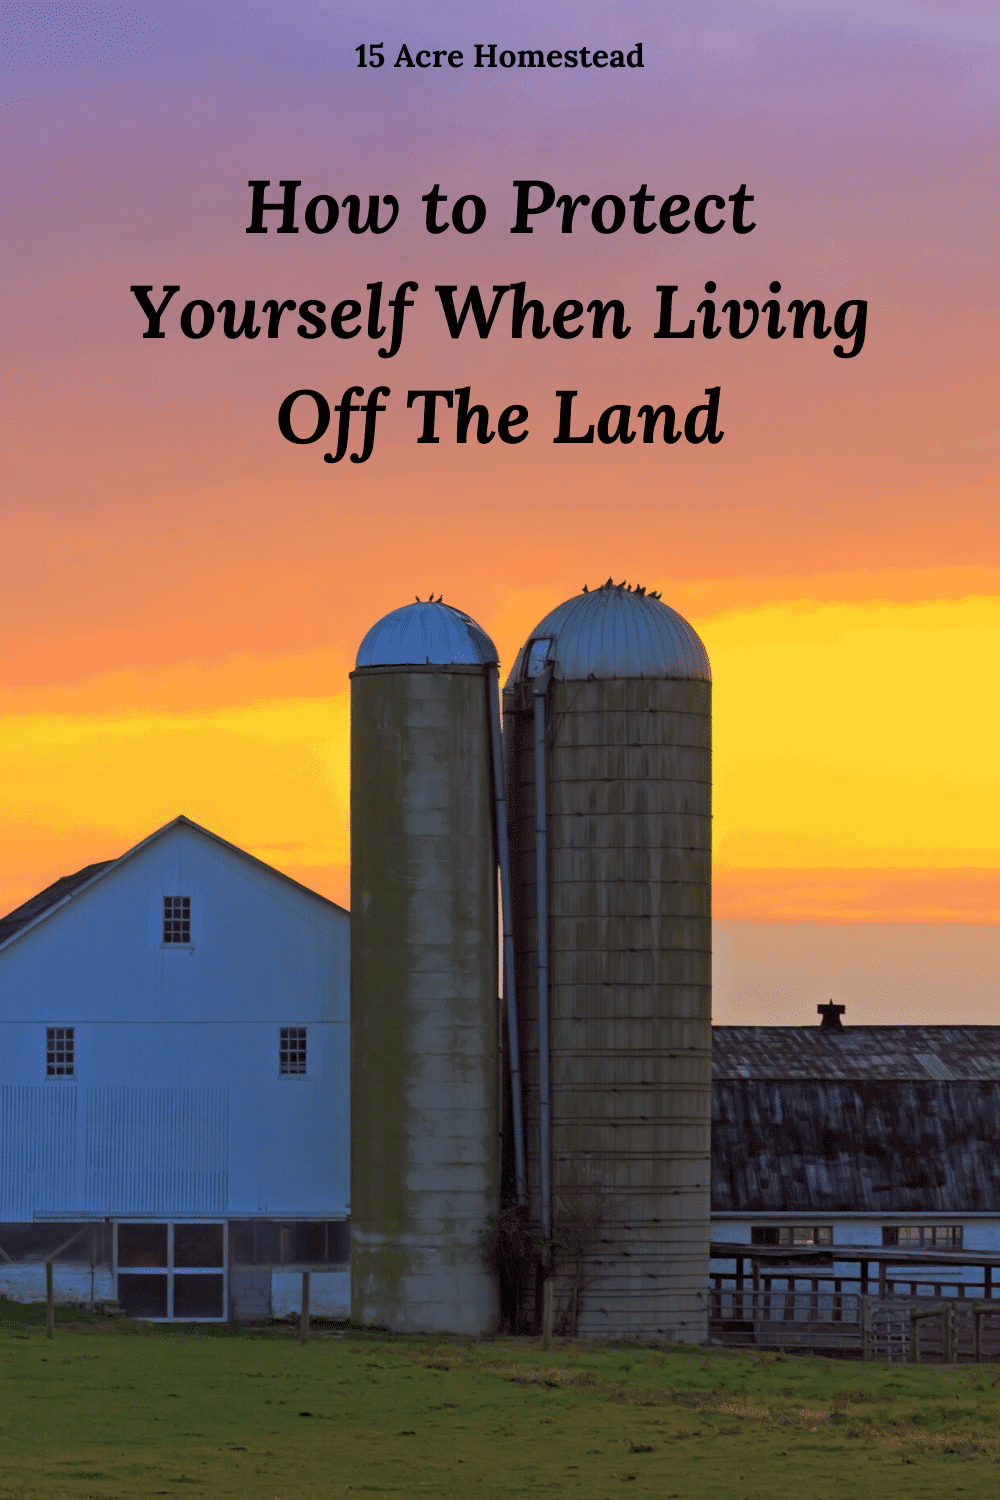 There are many ways to protect yourself when living off the land Here are some cool tips.